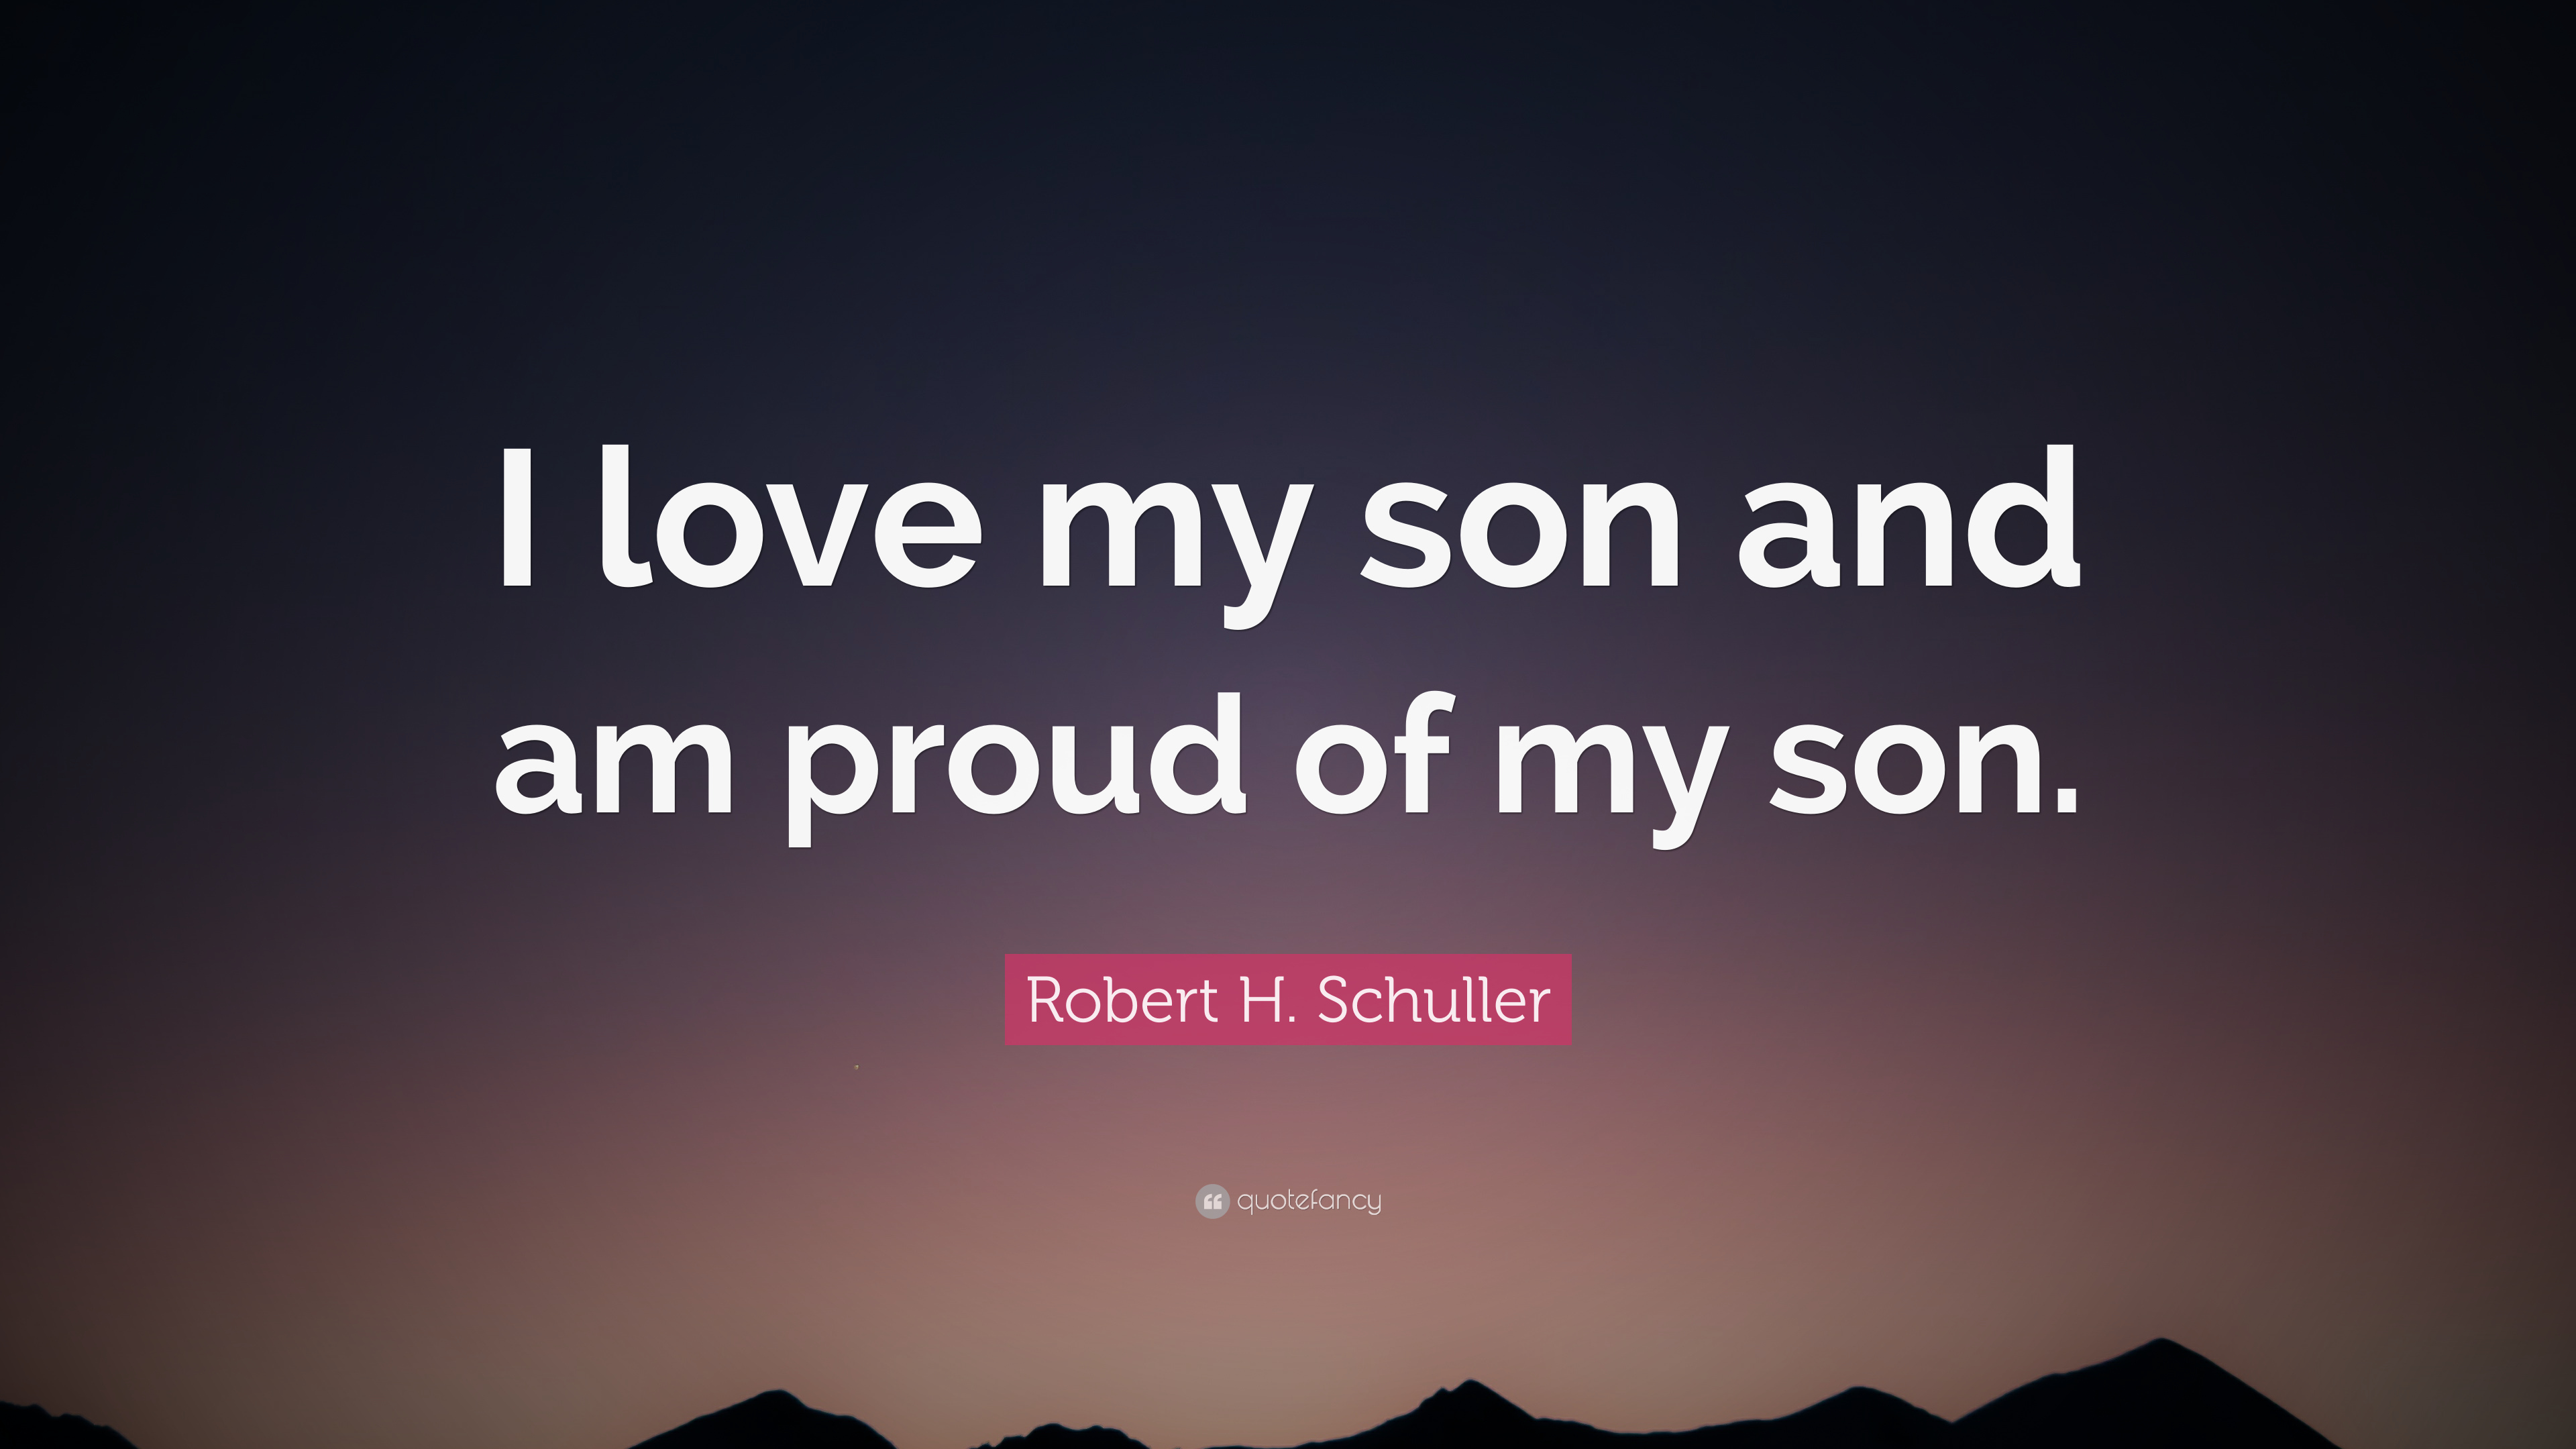 robert h schuller quote i love my son and am proud of my